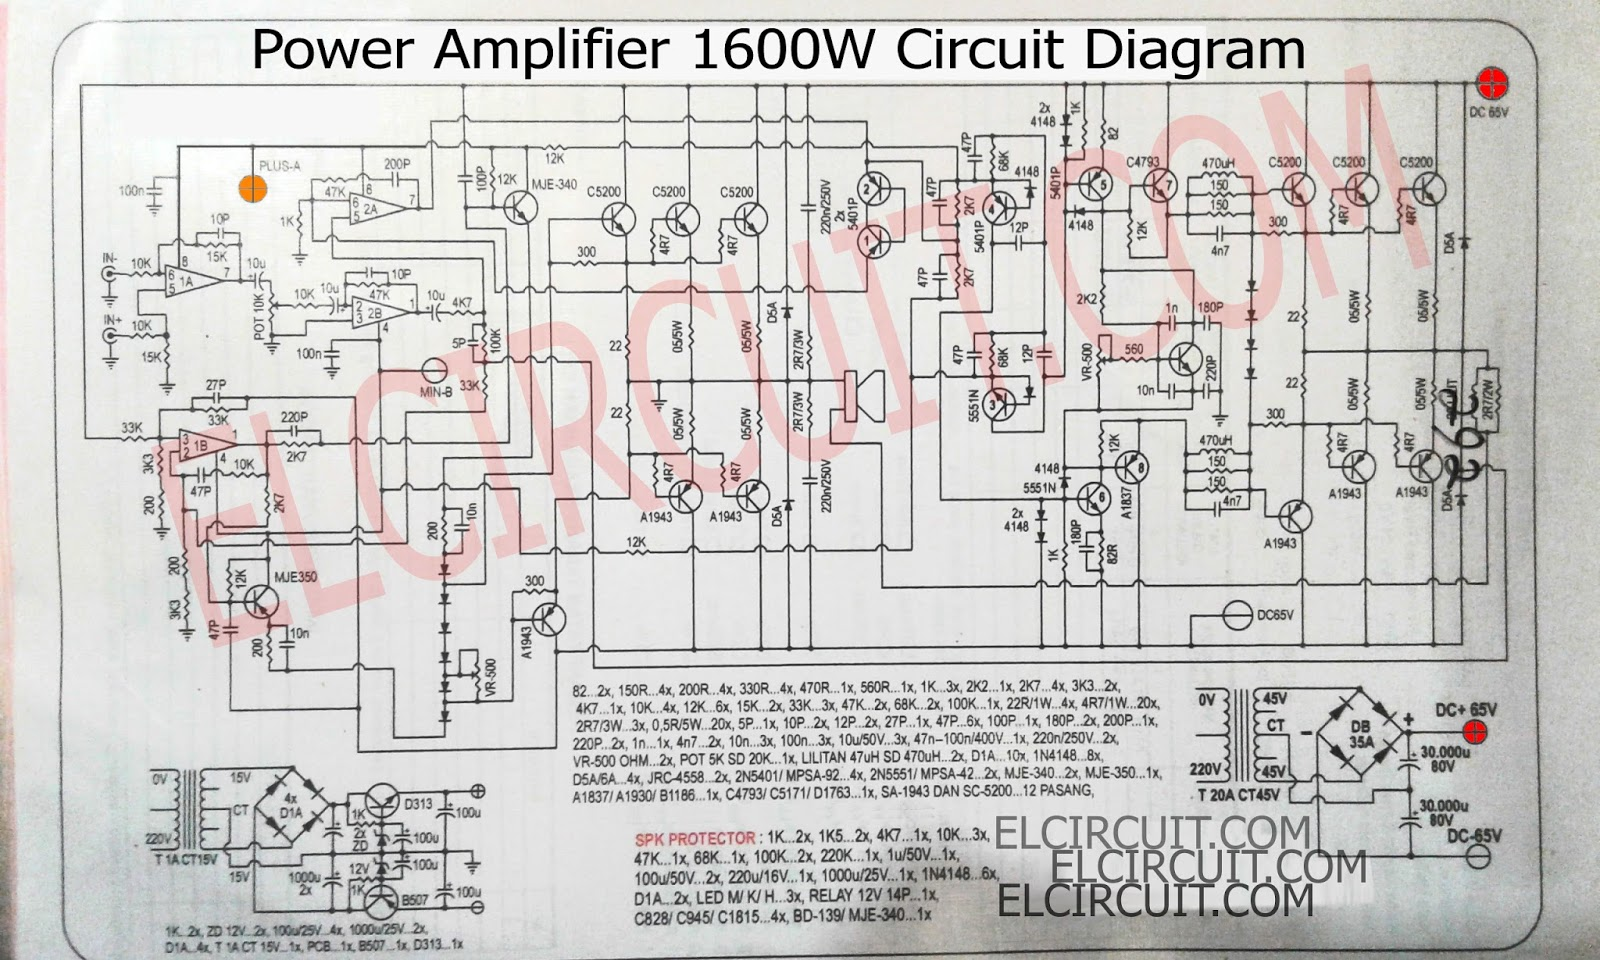 1600w high power amplifier circuit complete pcb layout 1600w high power amplifier circuit diagram asfbconference2016